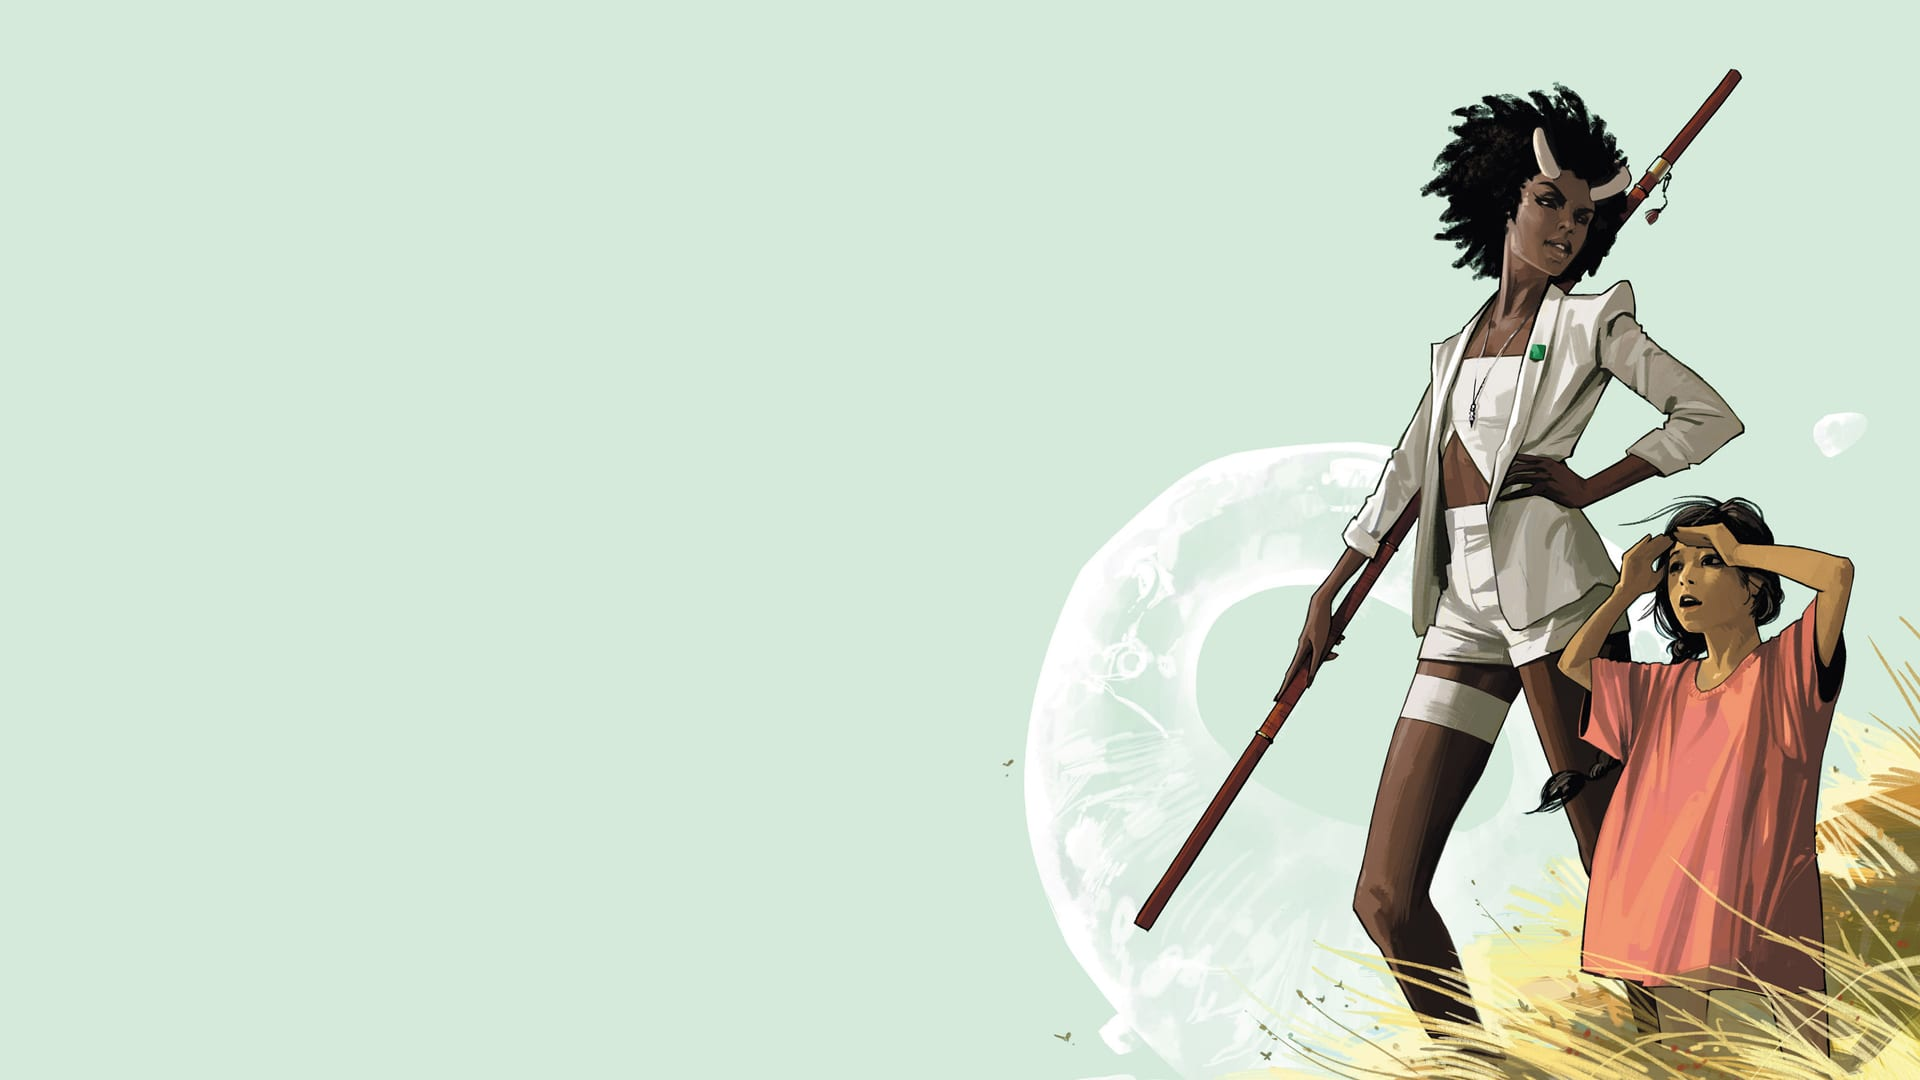 saga-comics-wallpaper